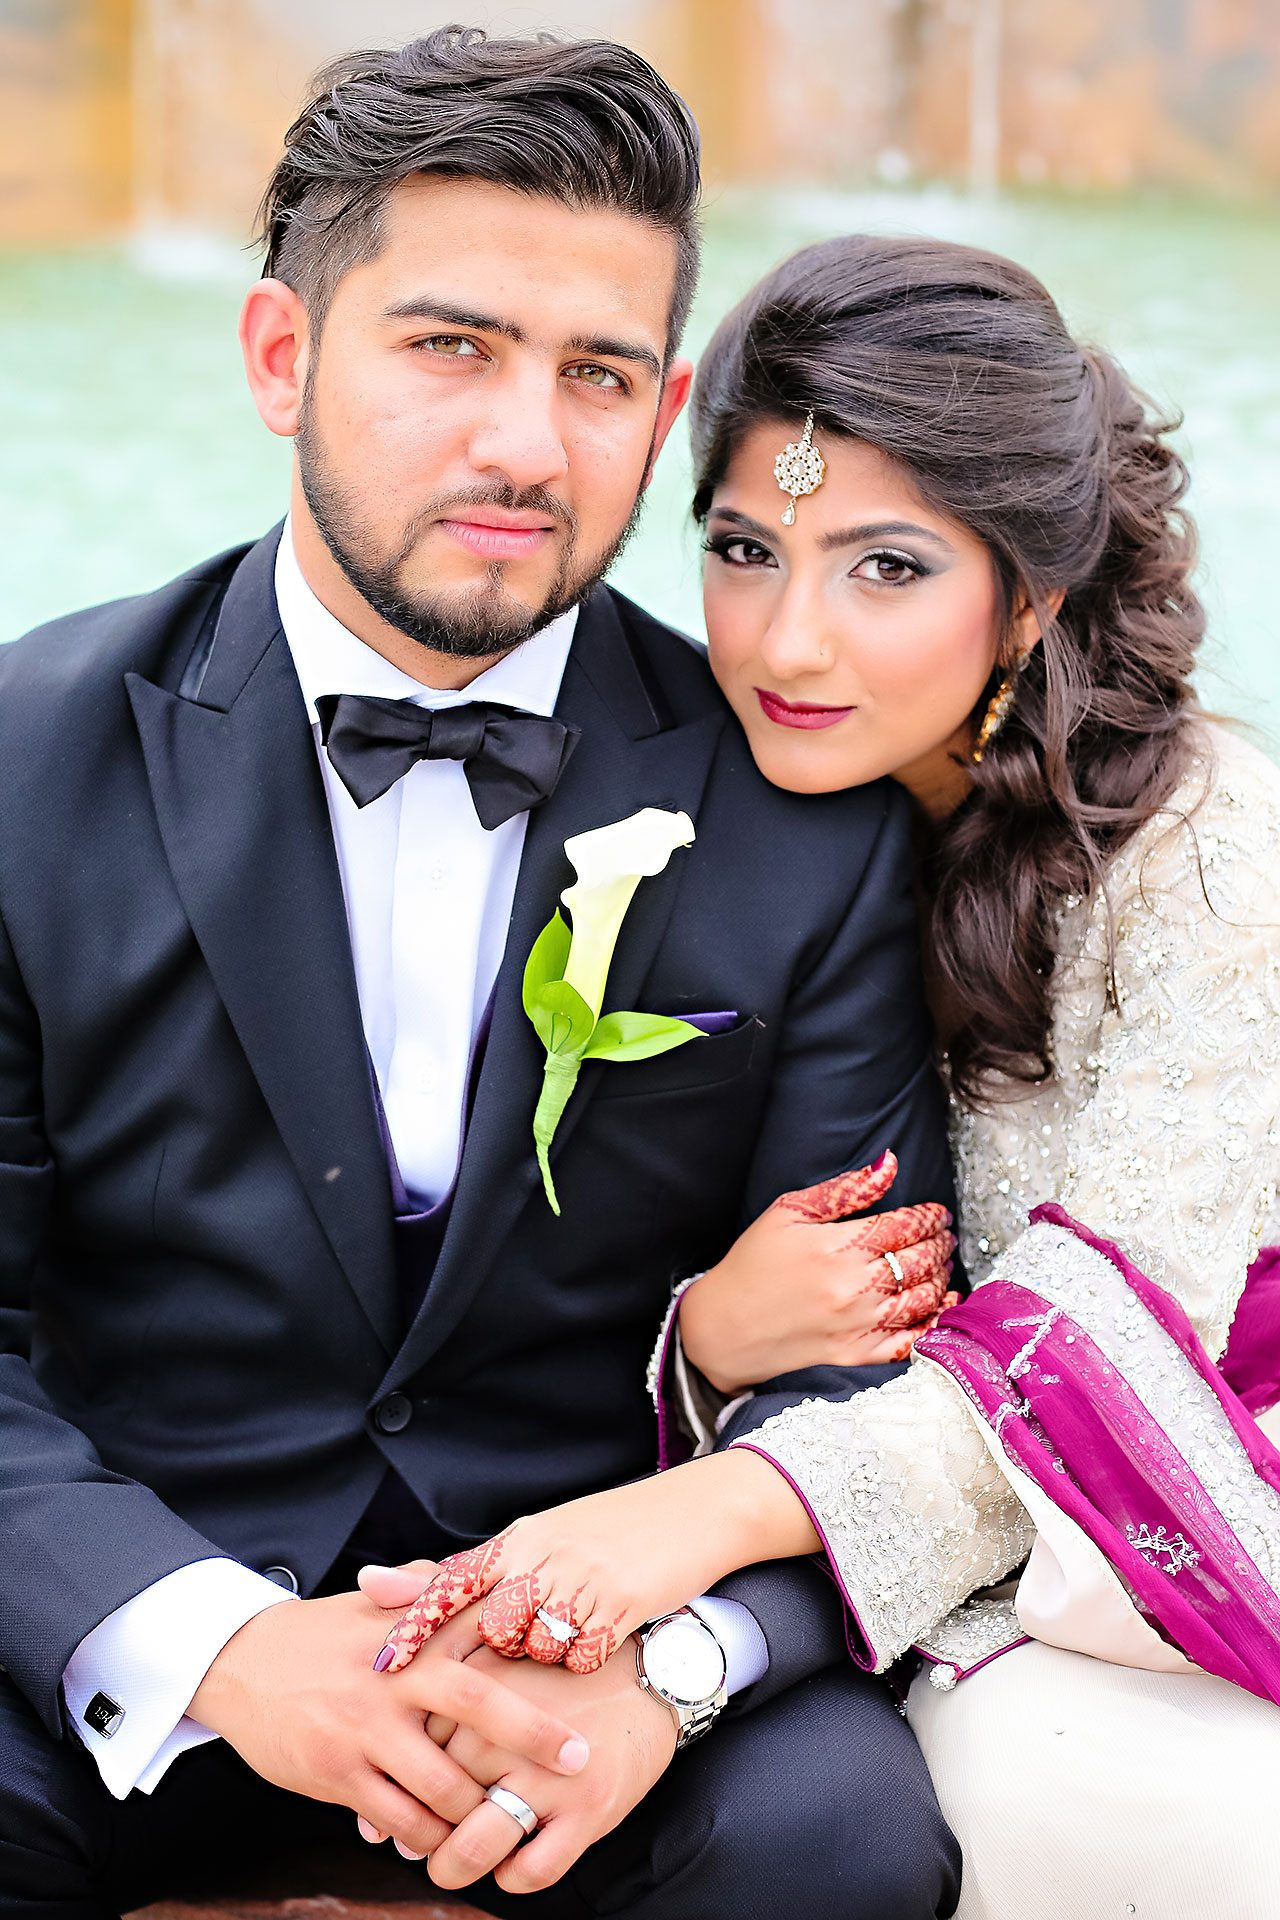 Haseeba Ammar Indianapolis Pakistani Wedding Reception 075